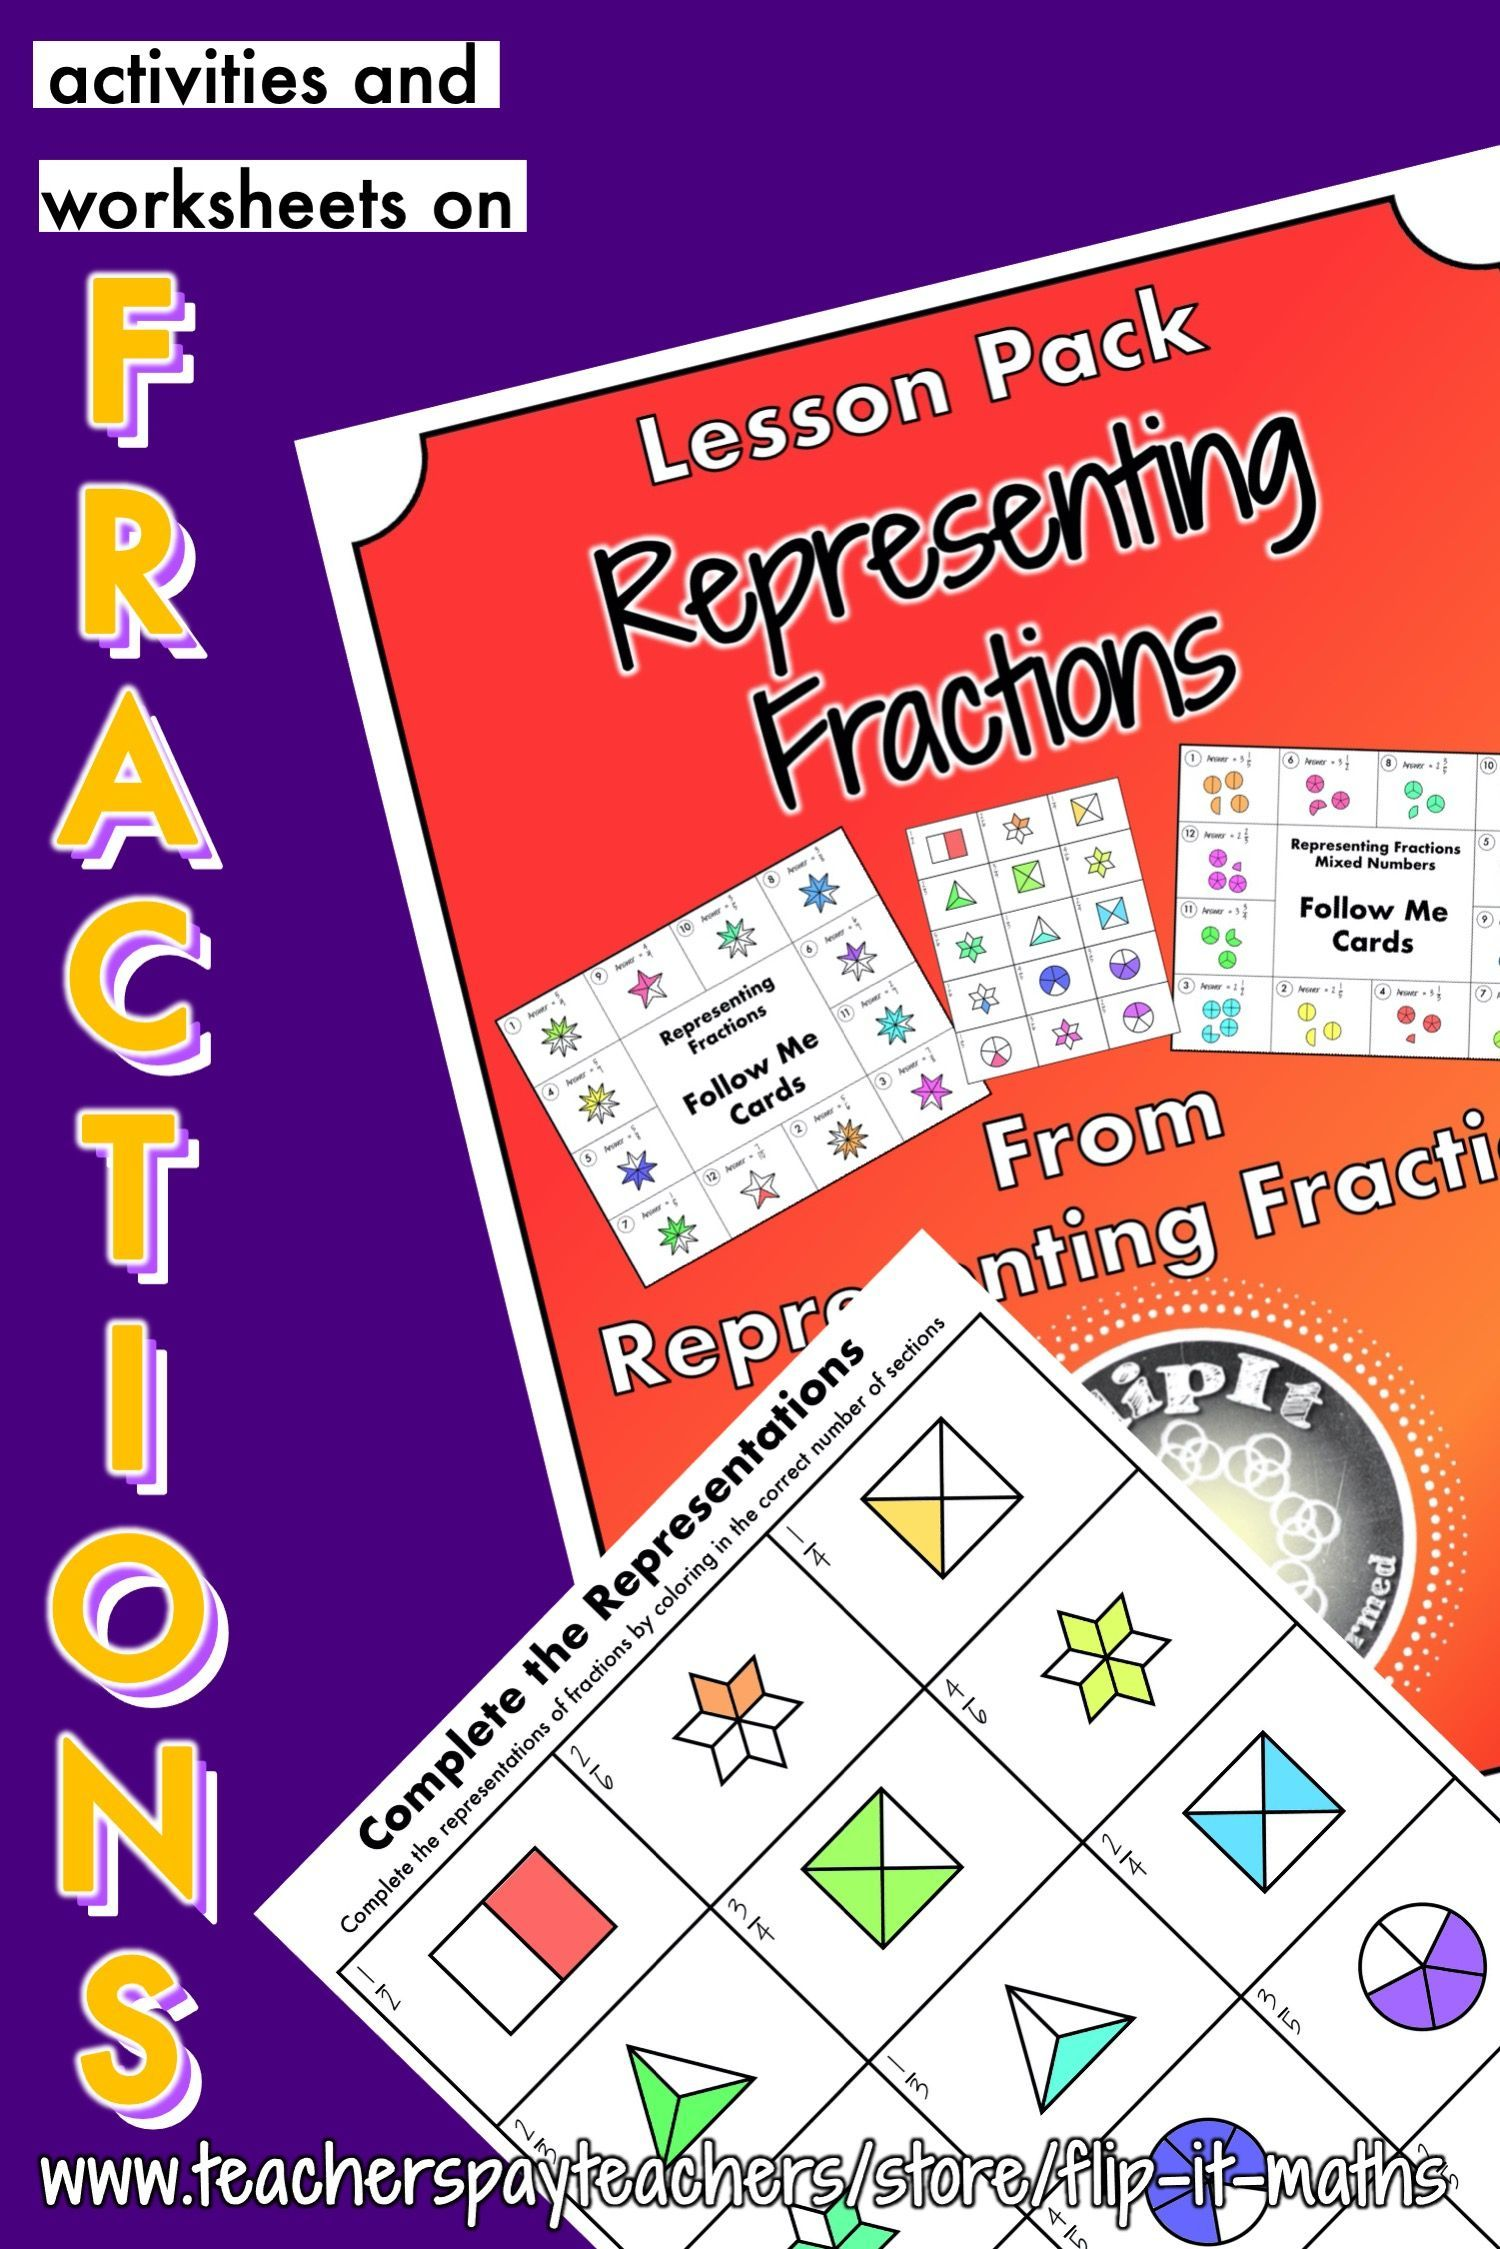 Representing Fractions In